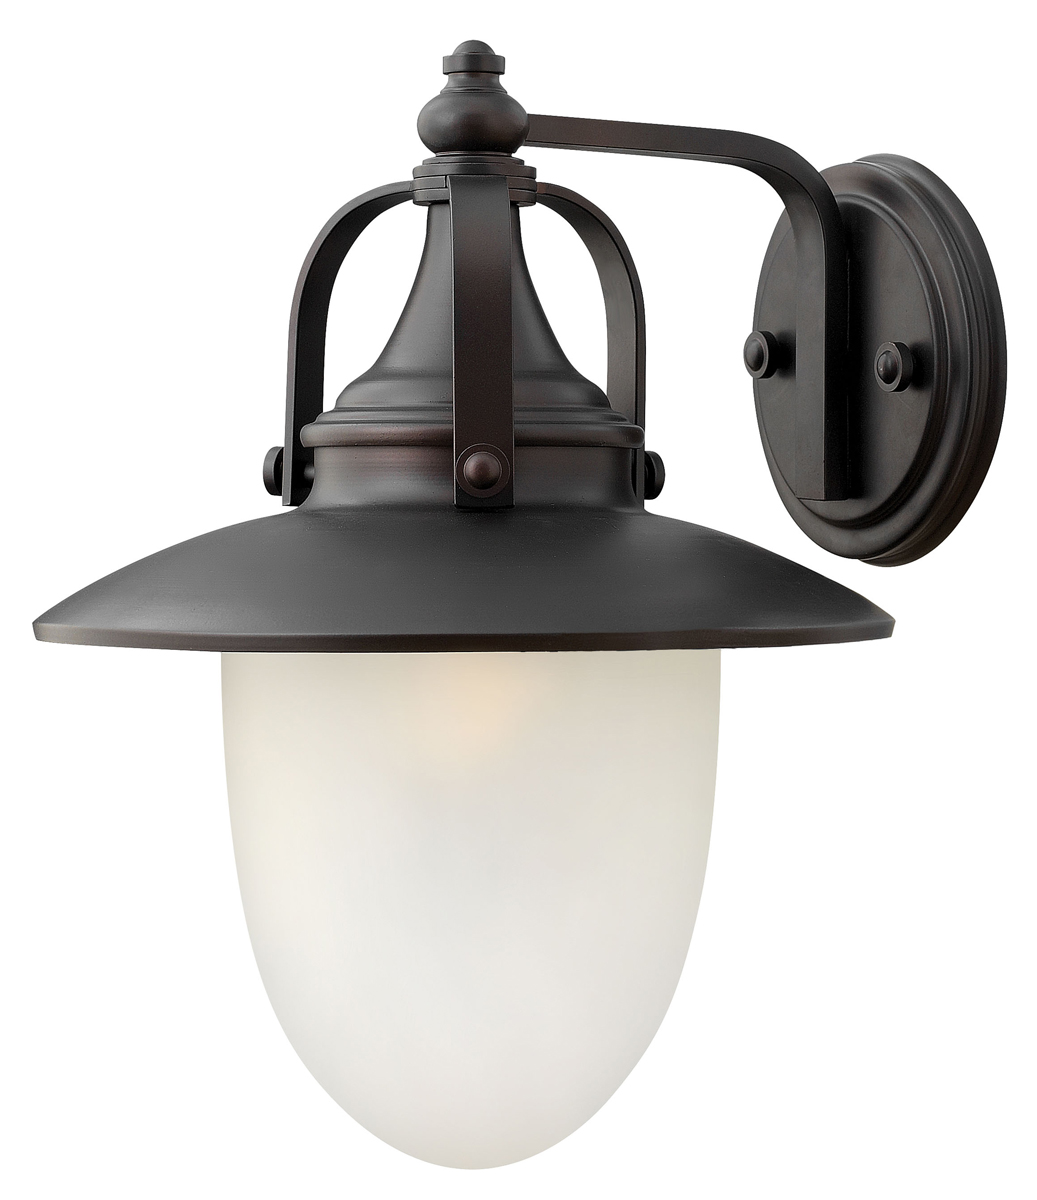 Wall Sconces En Espanol : Hinkley Lighting (2084SB-LED) Pembrook Large Outdoor LED Wall Sconce in Spanish Bronze